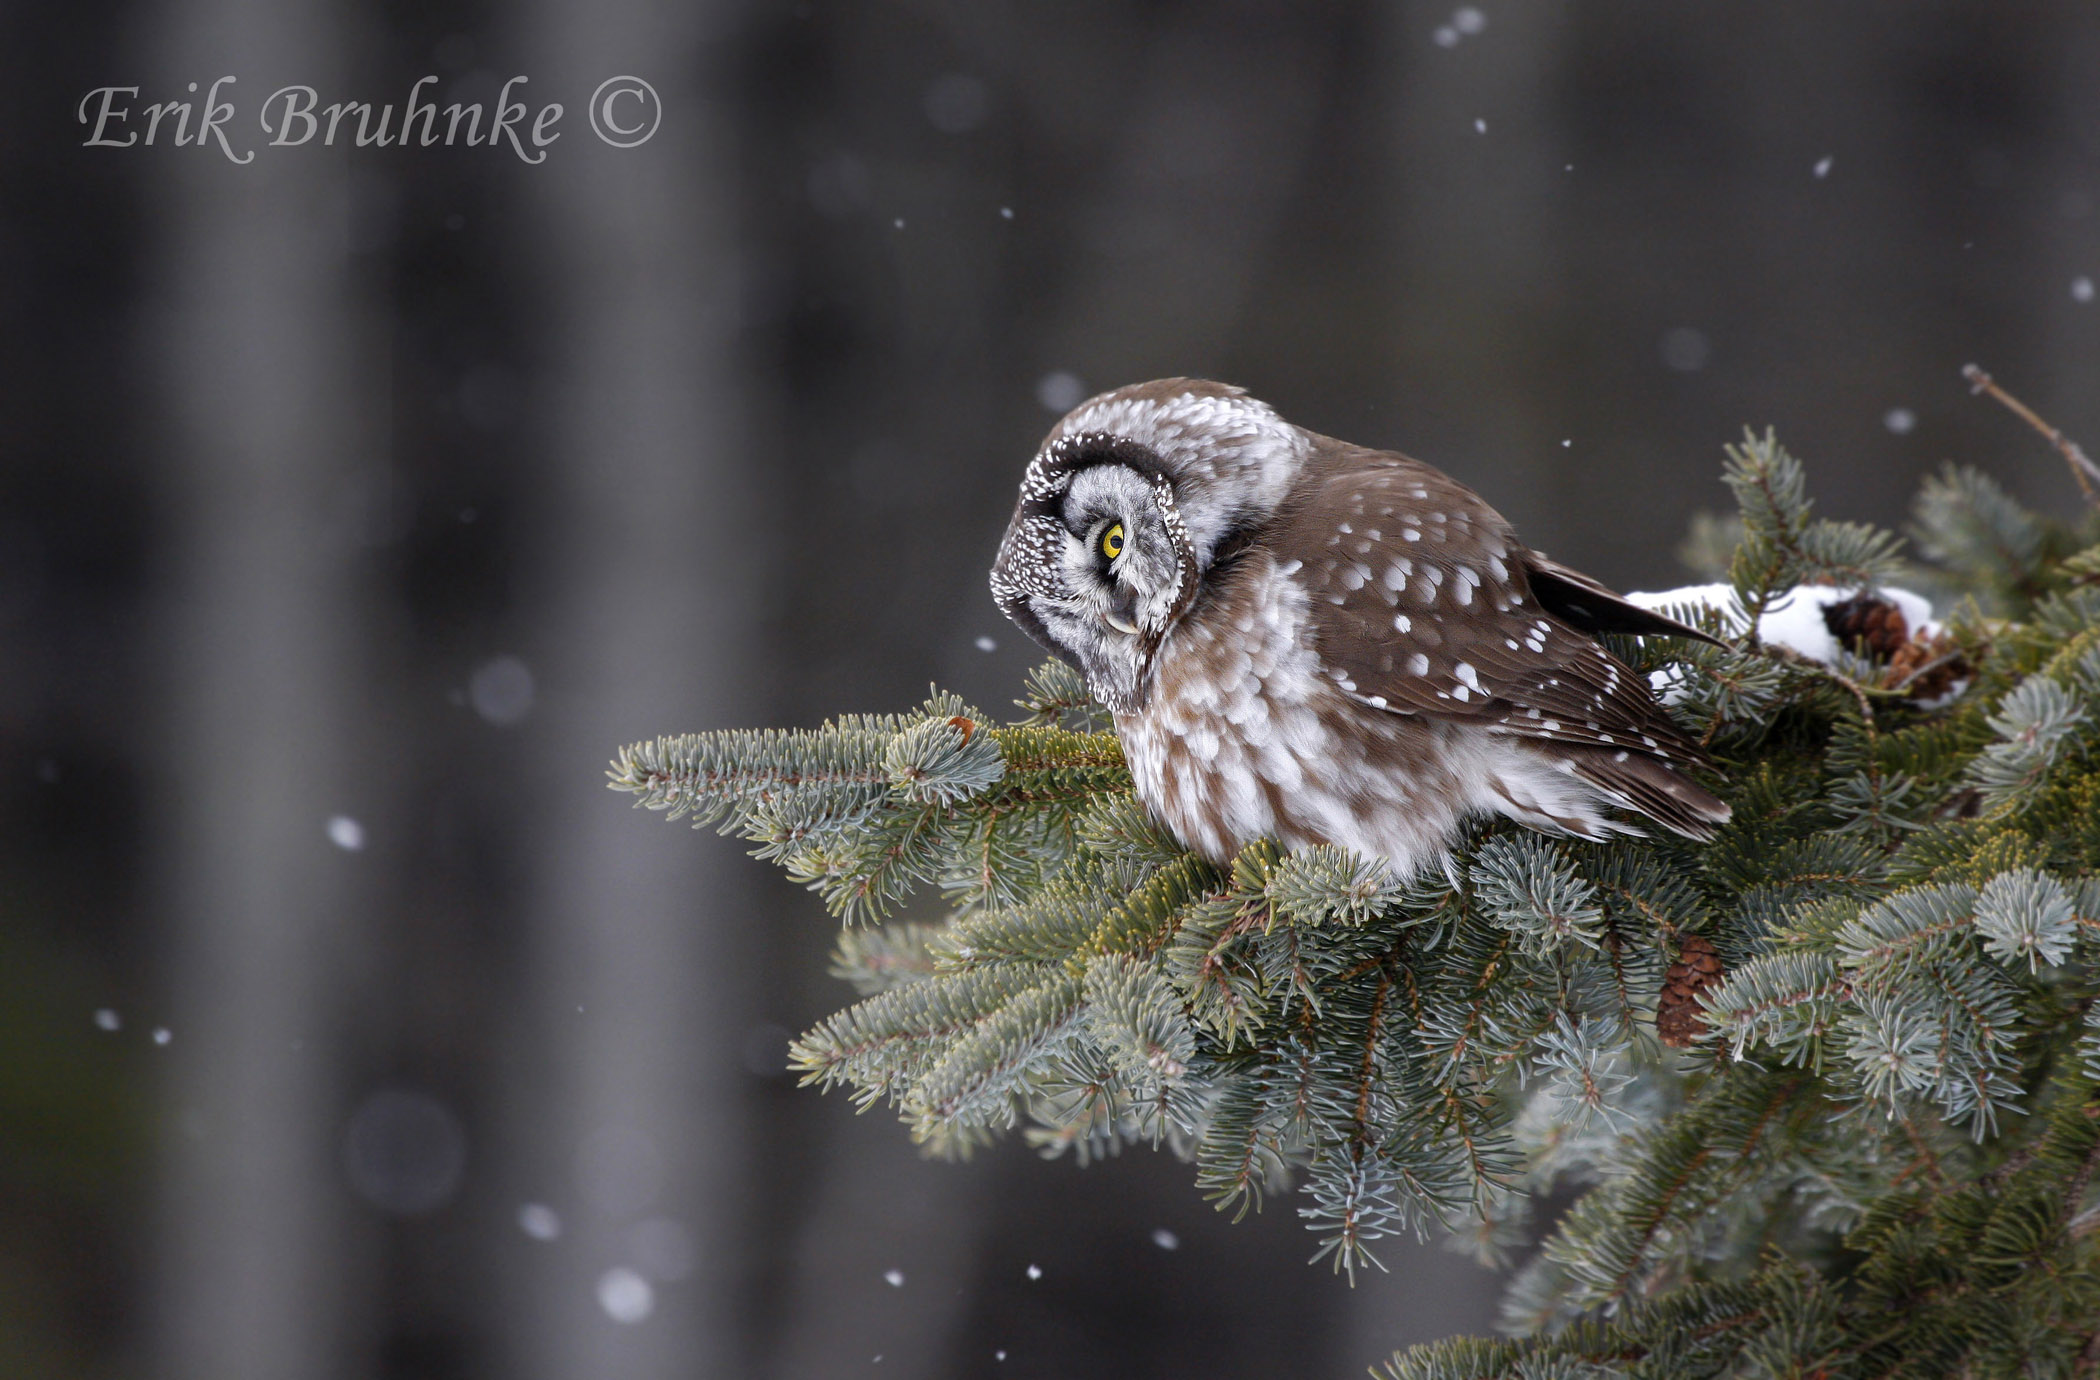 Here is a Boreal Owl, tilting its head, and listening carefully for tiny-footed rodents scurrying within the snow beneath this bird